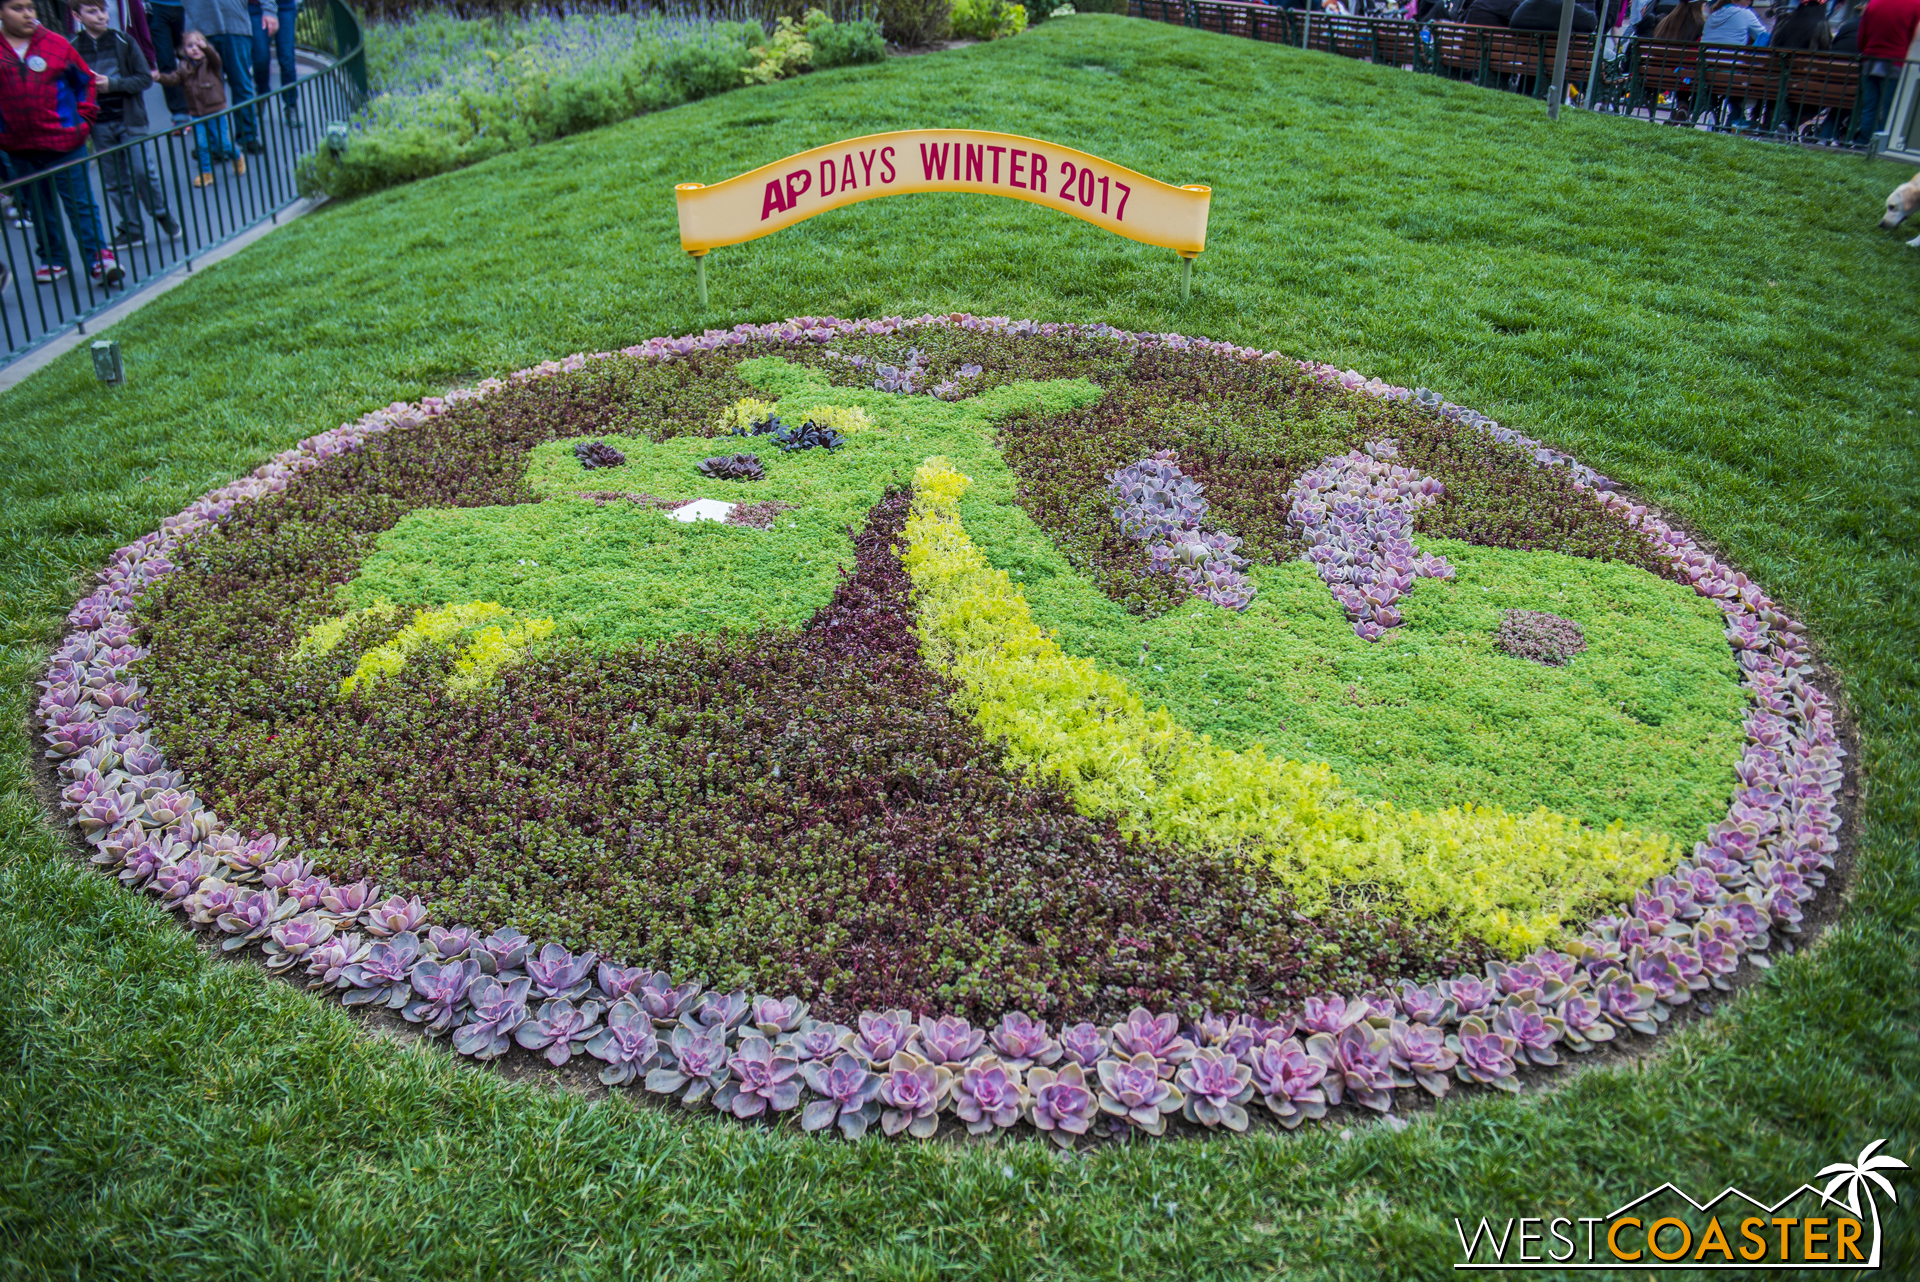 I feel ashamed for having missed this two visits in a row, but there's an adorable Elliott floral arrangement located off the main walkway between the Tomorrowland and Pixie Hollow entrances.